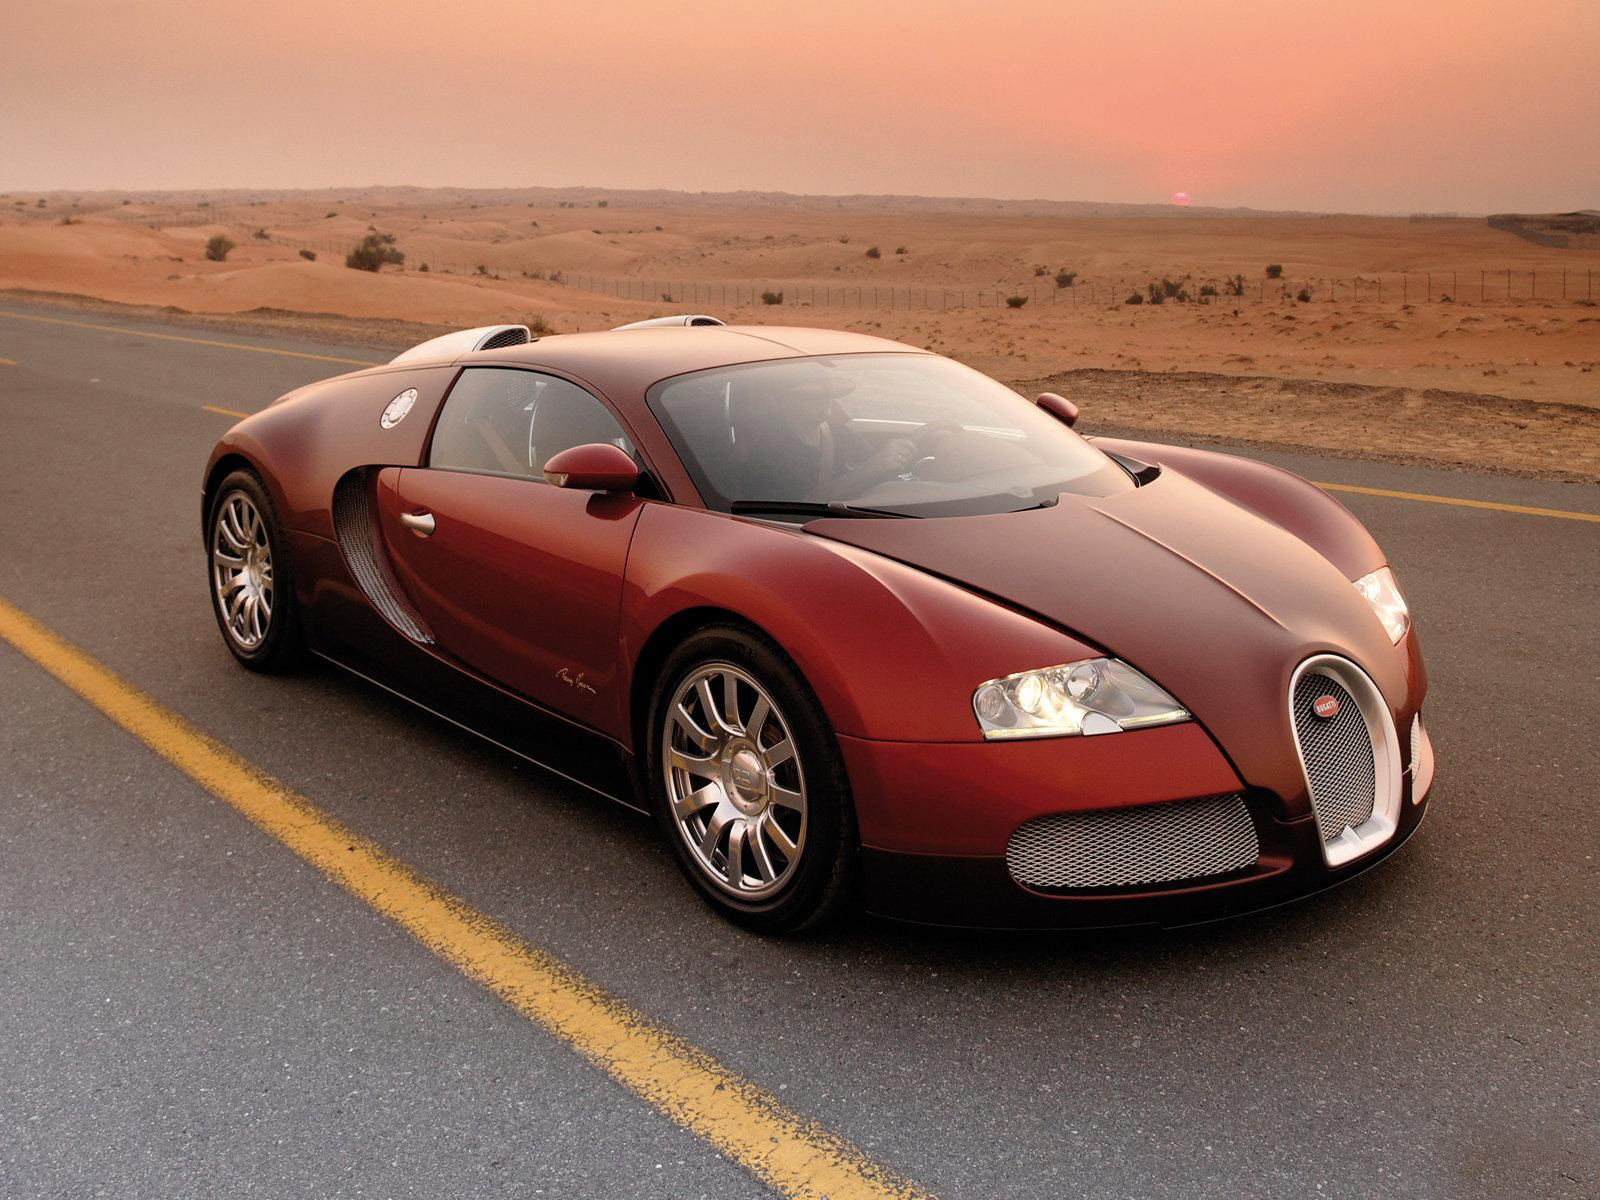 bugatti veyron red 1600 1200 free download hd wallpapers free desktop bac. Black Bedroom Furniture Sets. Home Design Ideas